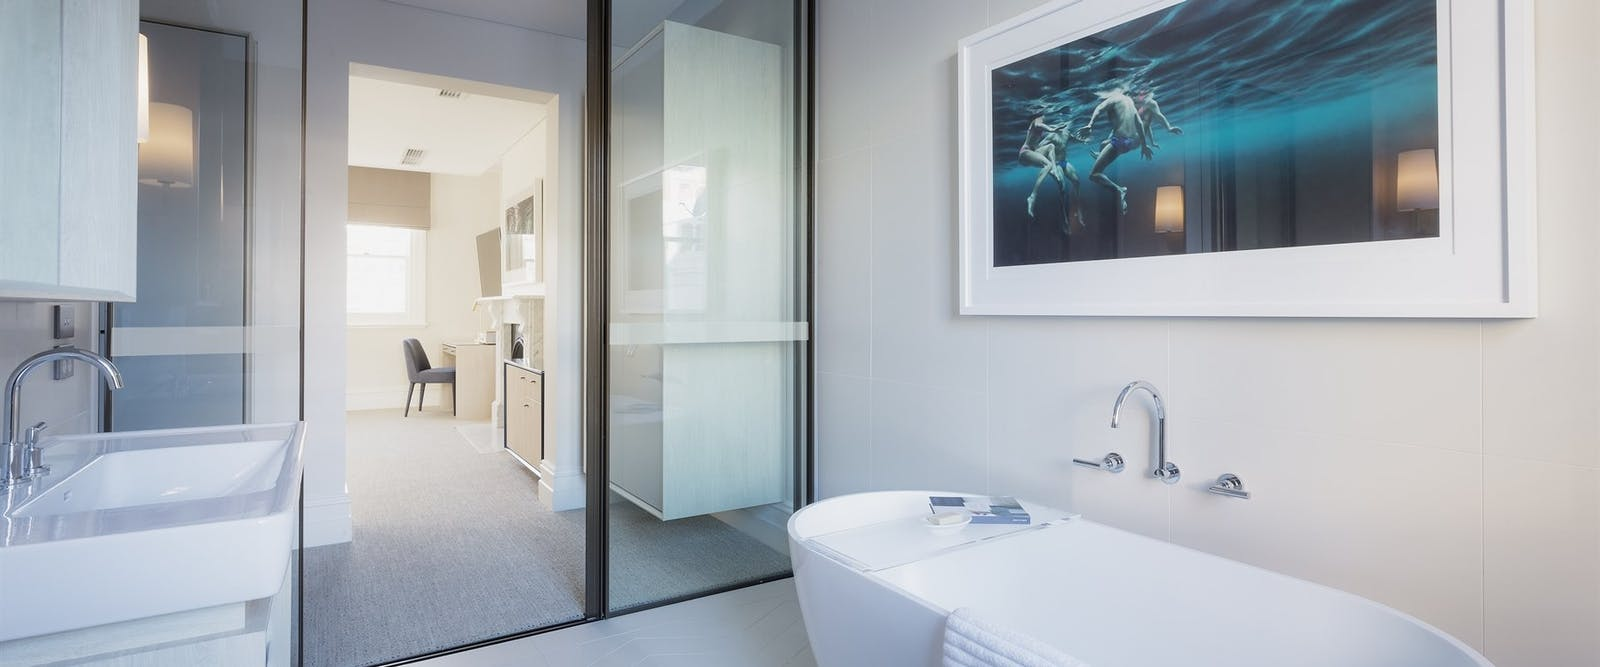 victoria suite bathroom at Spicers Potts Point